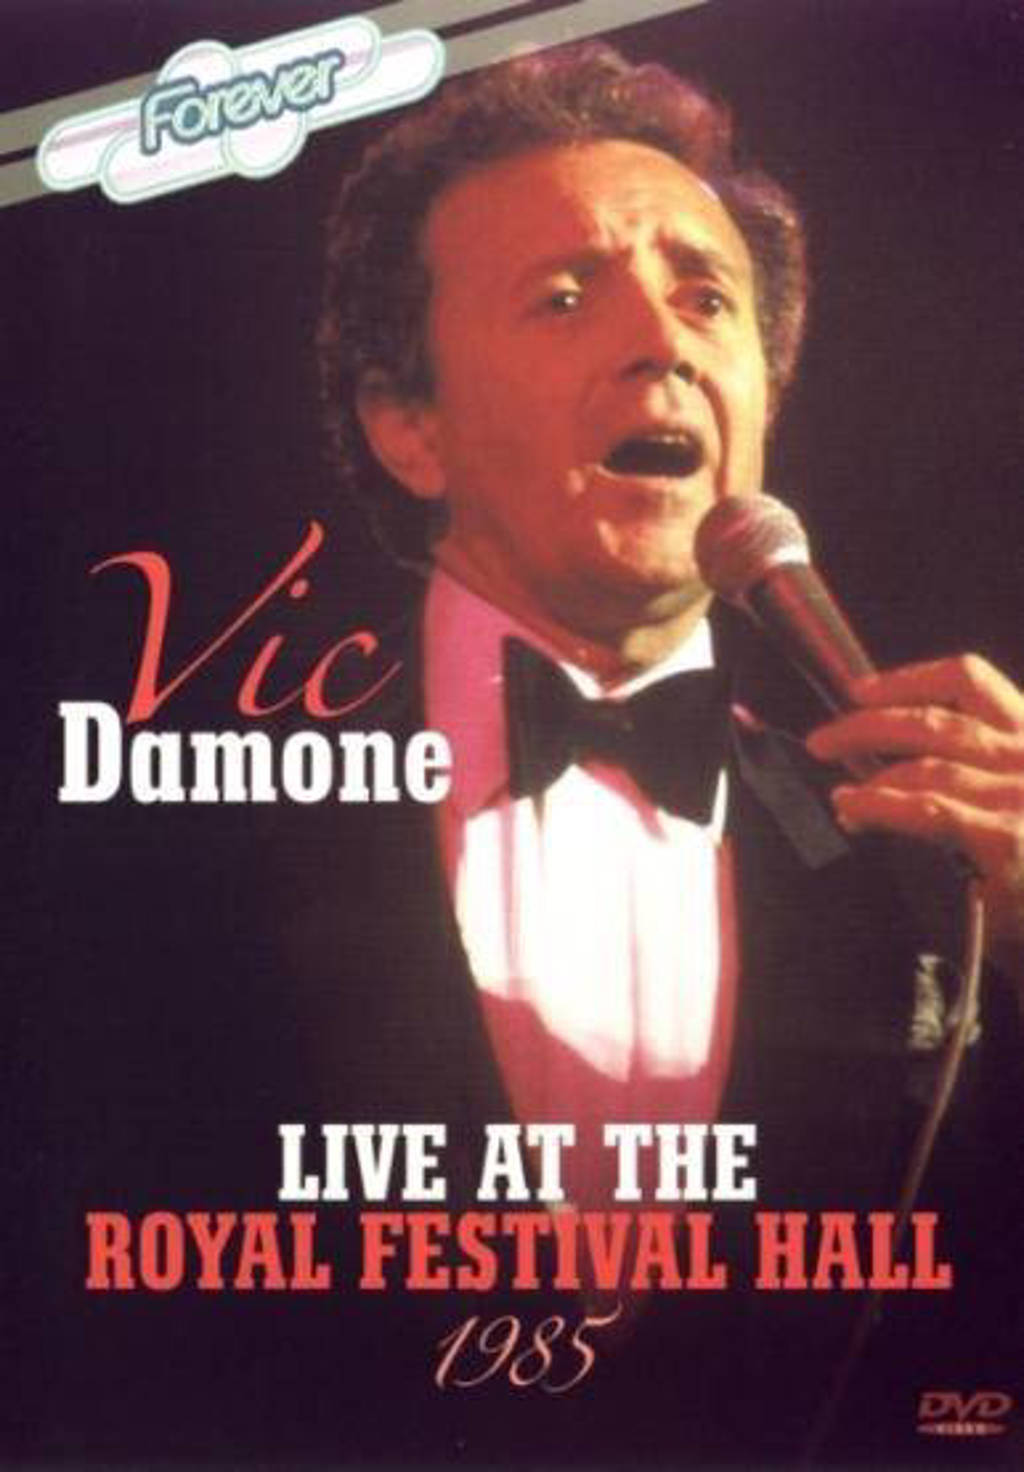 Vic Damone - live at the Royal Festival Hall 1985 (DVD)